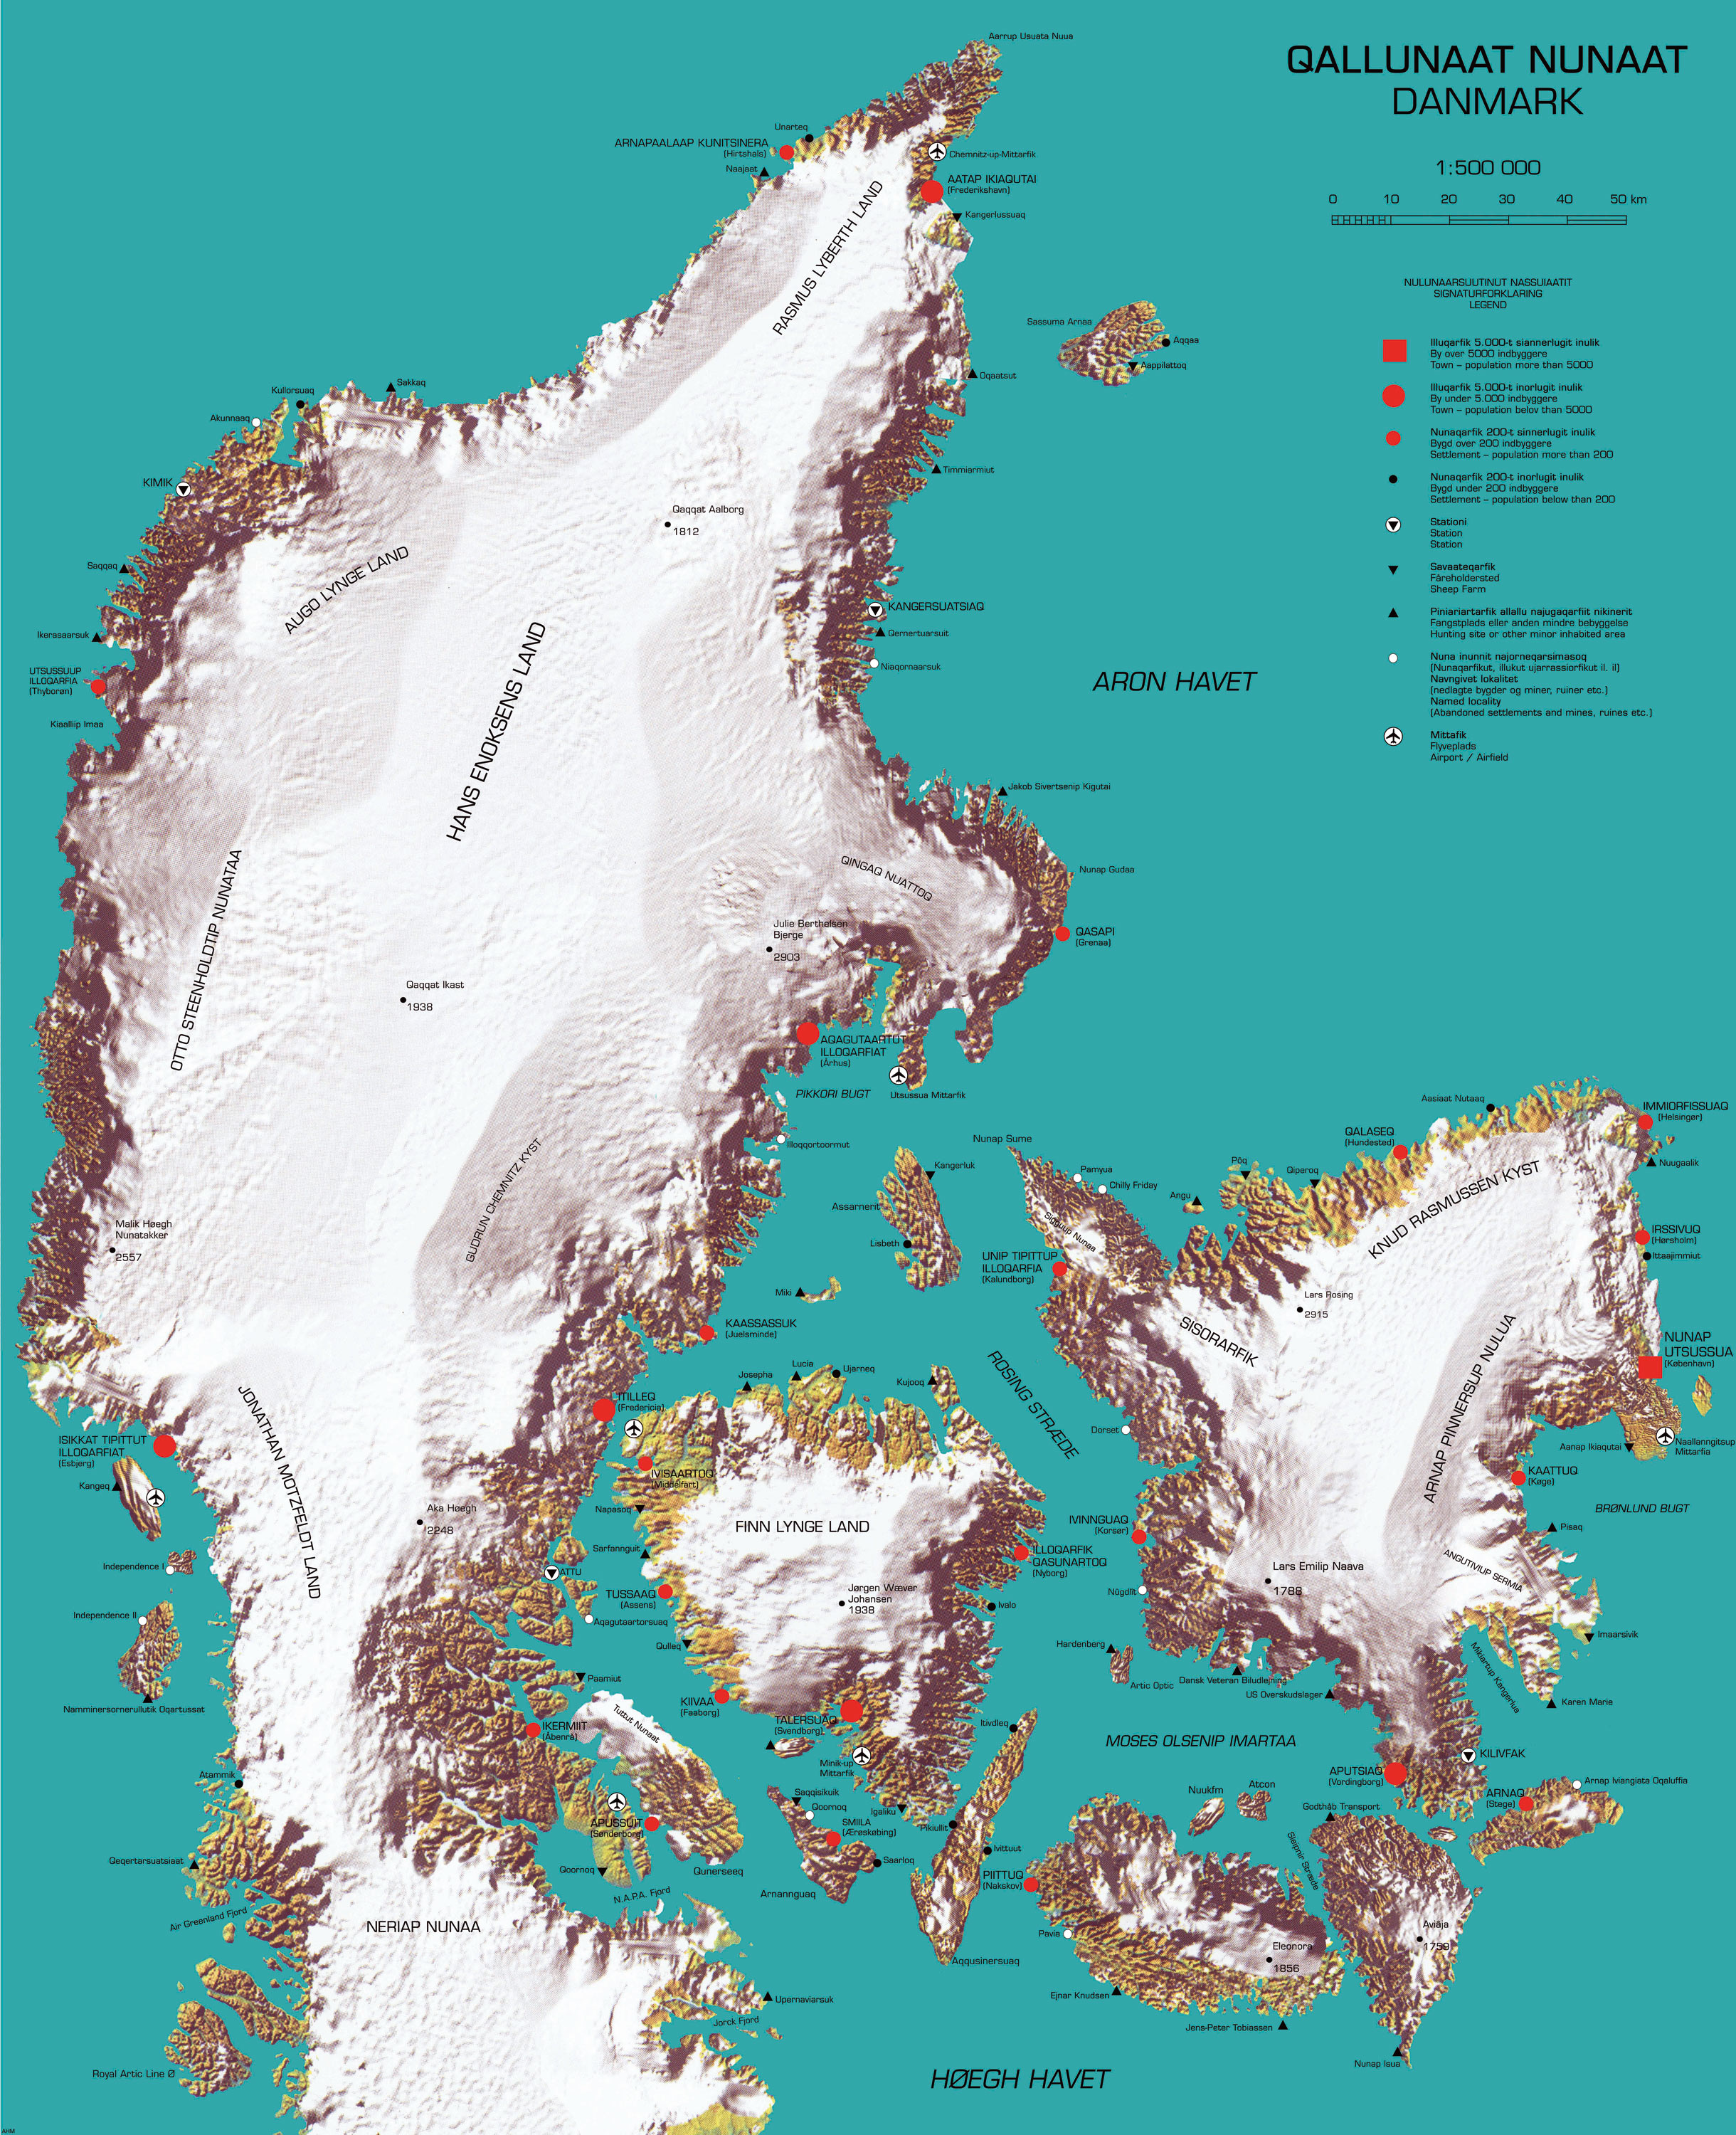 Map of the week map of the week reverse colonialism the map pictures denmark being colonized by greenland not just by the people but also by climate and topography gumiabroncs Image collections